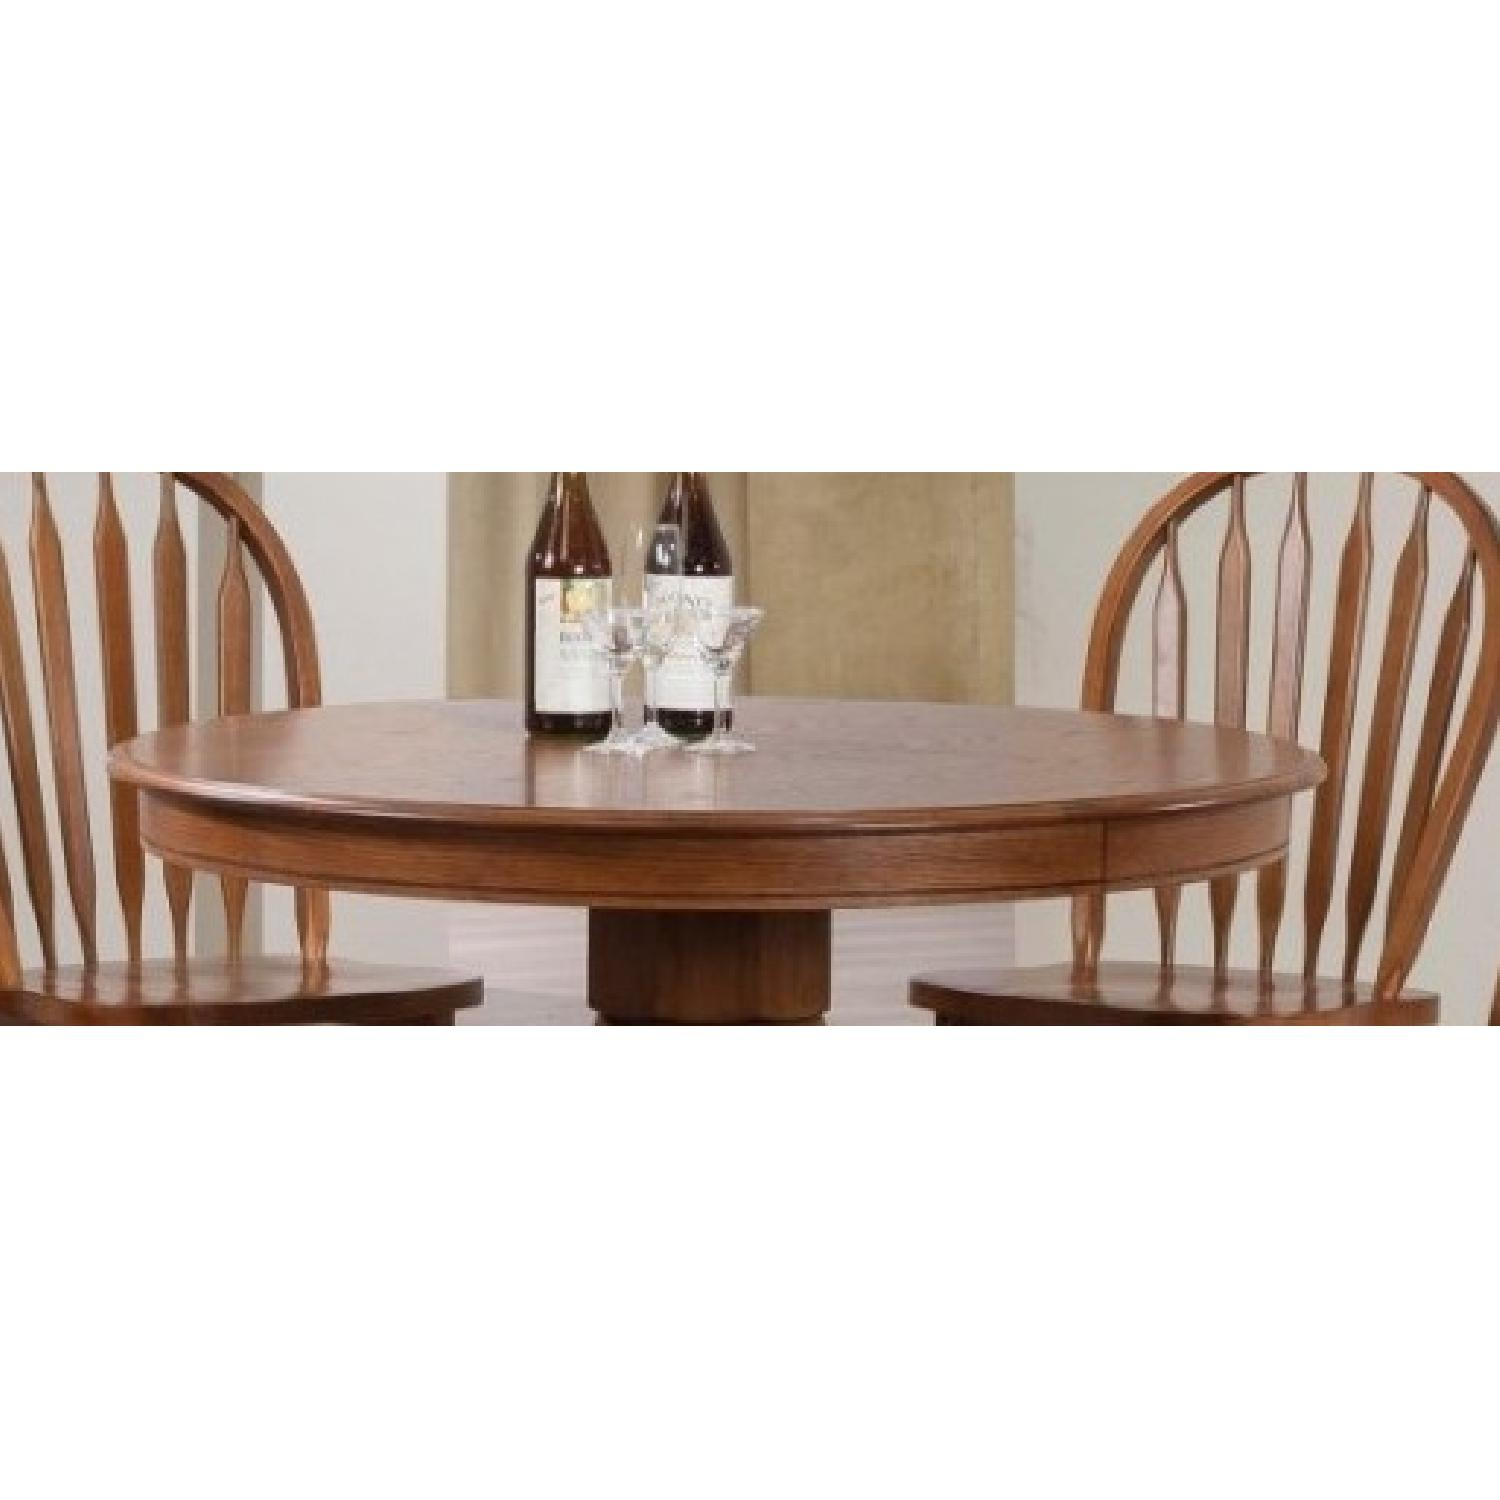 Country Style Round Pedestal Dining Table in Warm Oak Finish - image-3